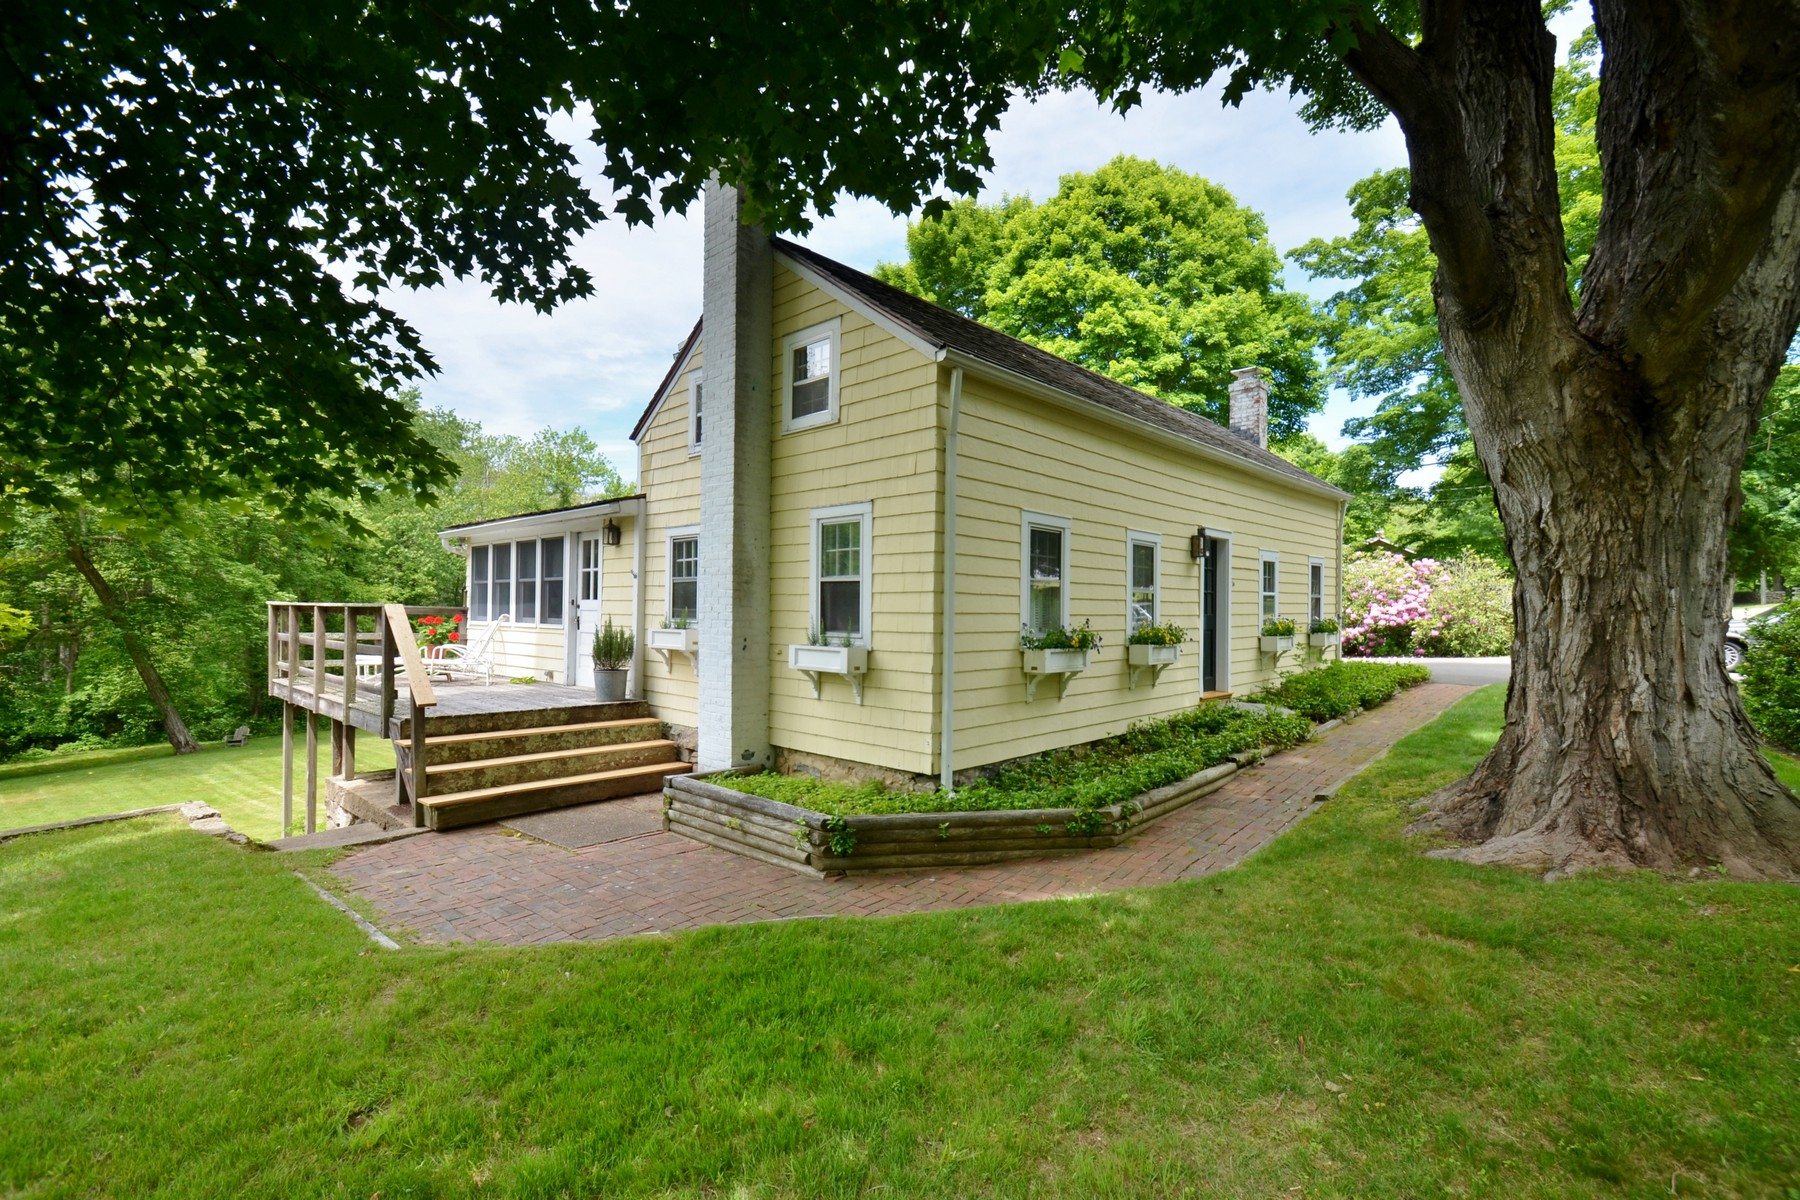 Casa Unifamiliar por un Venta en Cape Abounds with Character & Charm 56 Sill Lane Old Lyme, Connecticut 06371 Estados Unidos